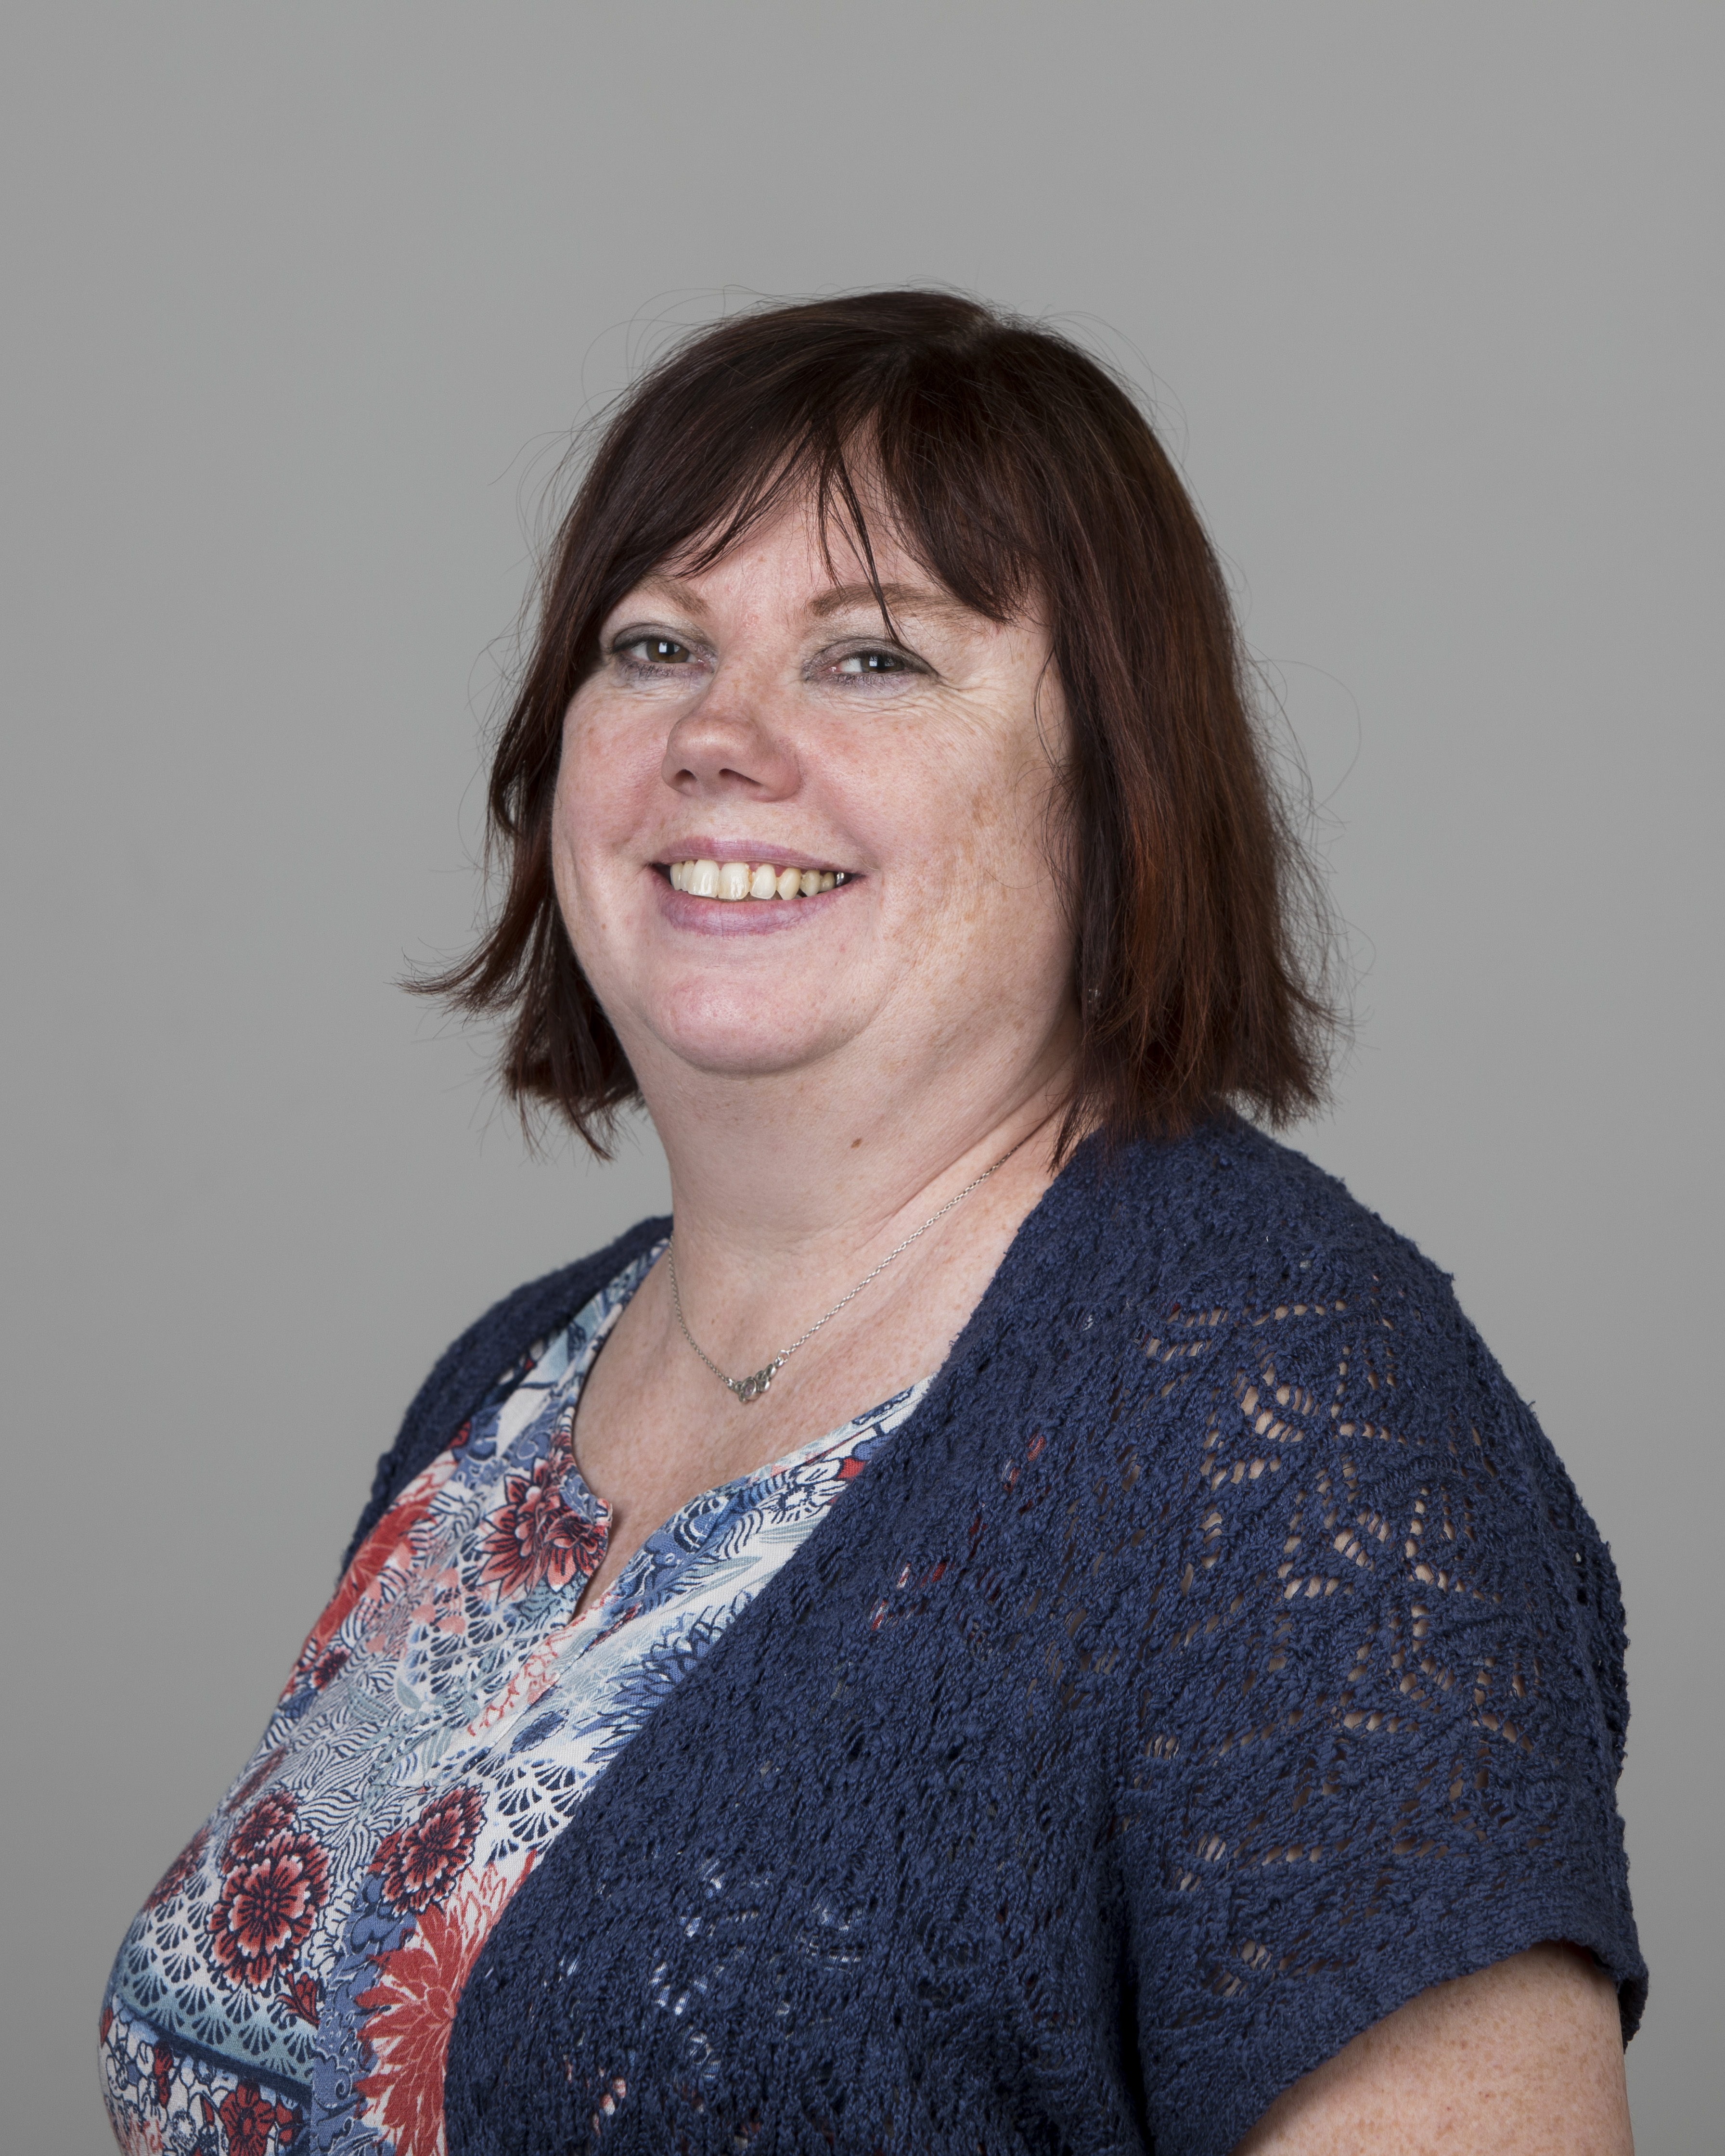 Head shot of education officer Mandy Wilding